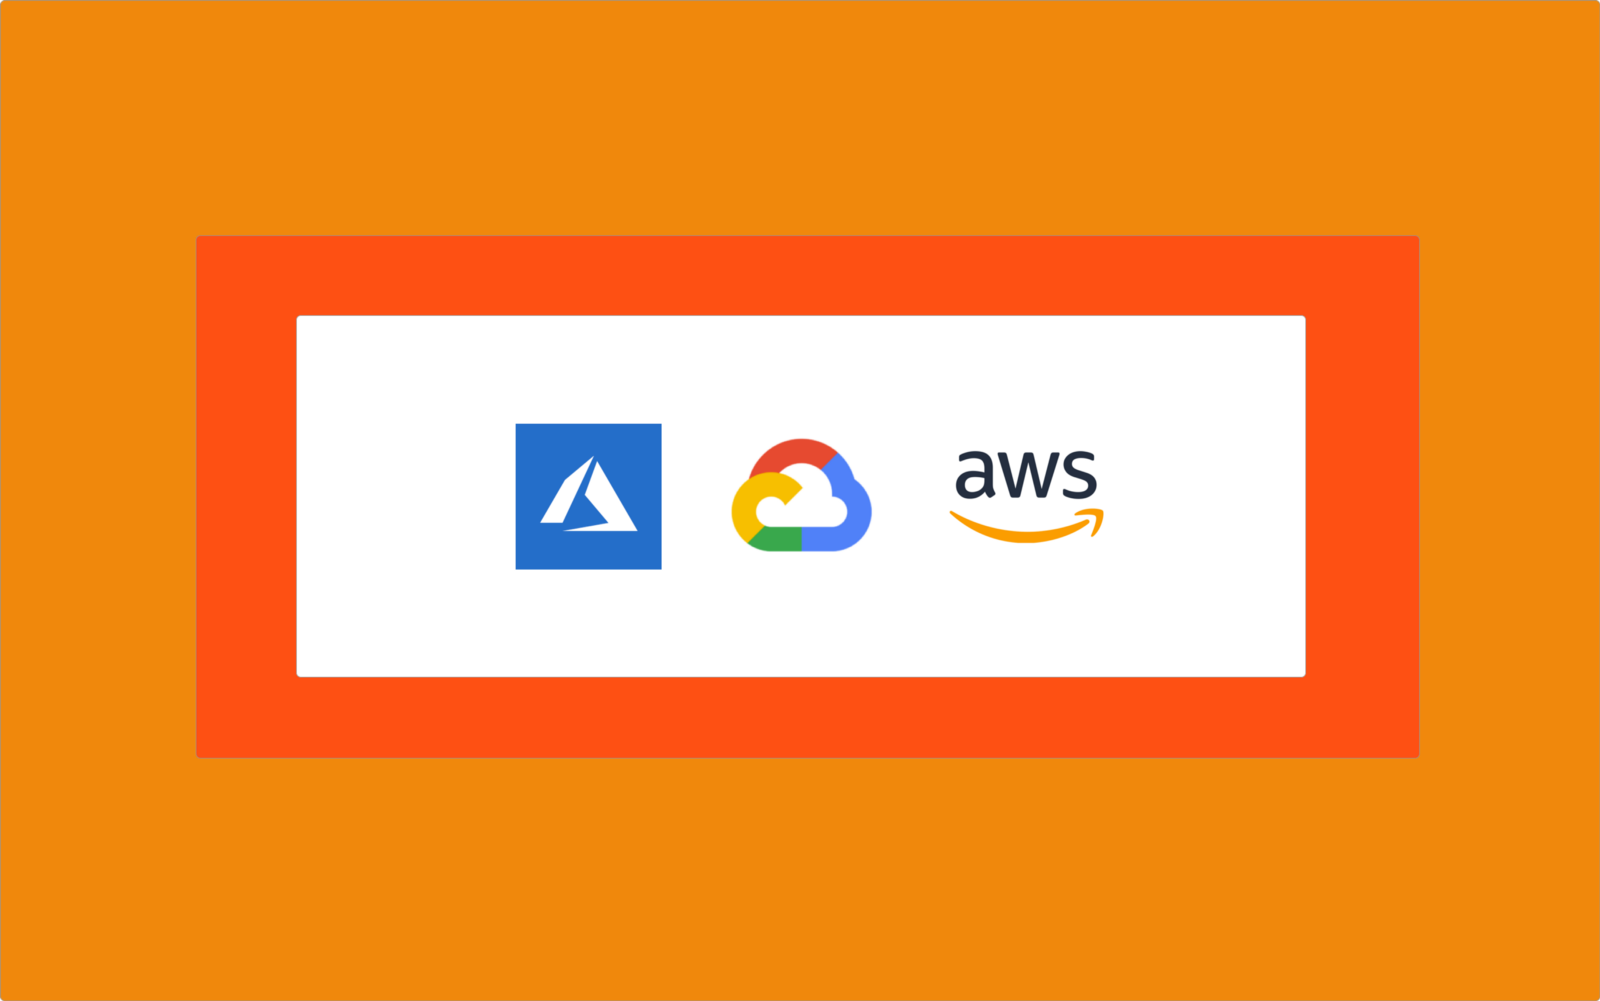 How To Organize, Process and Load Your Apache Parquet Data To Amazon Athena, AWS Redshift Spectrum…